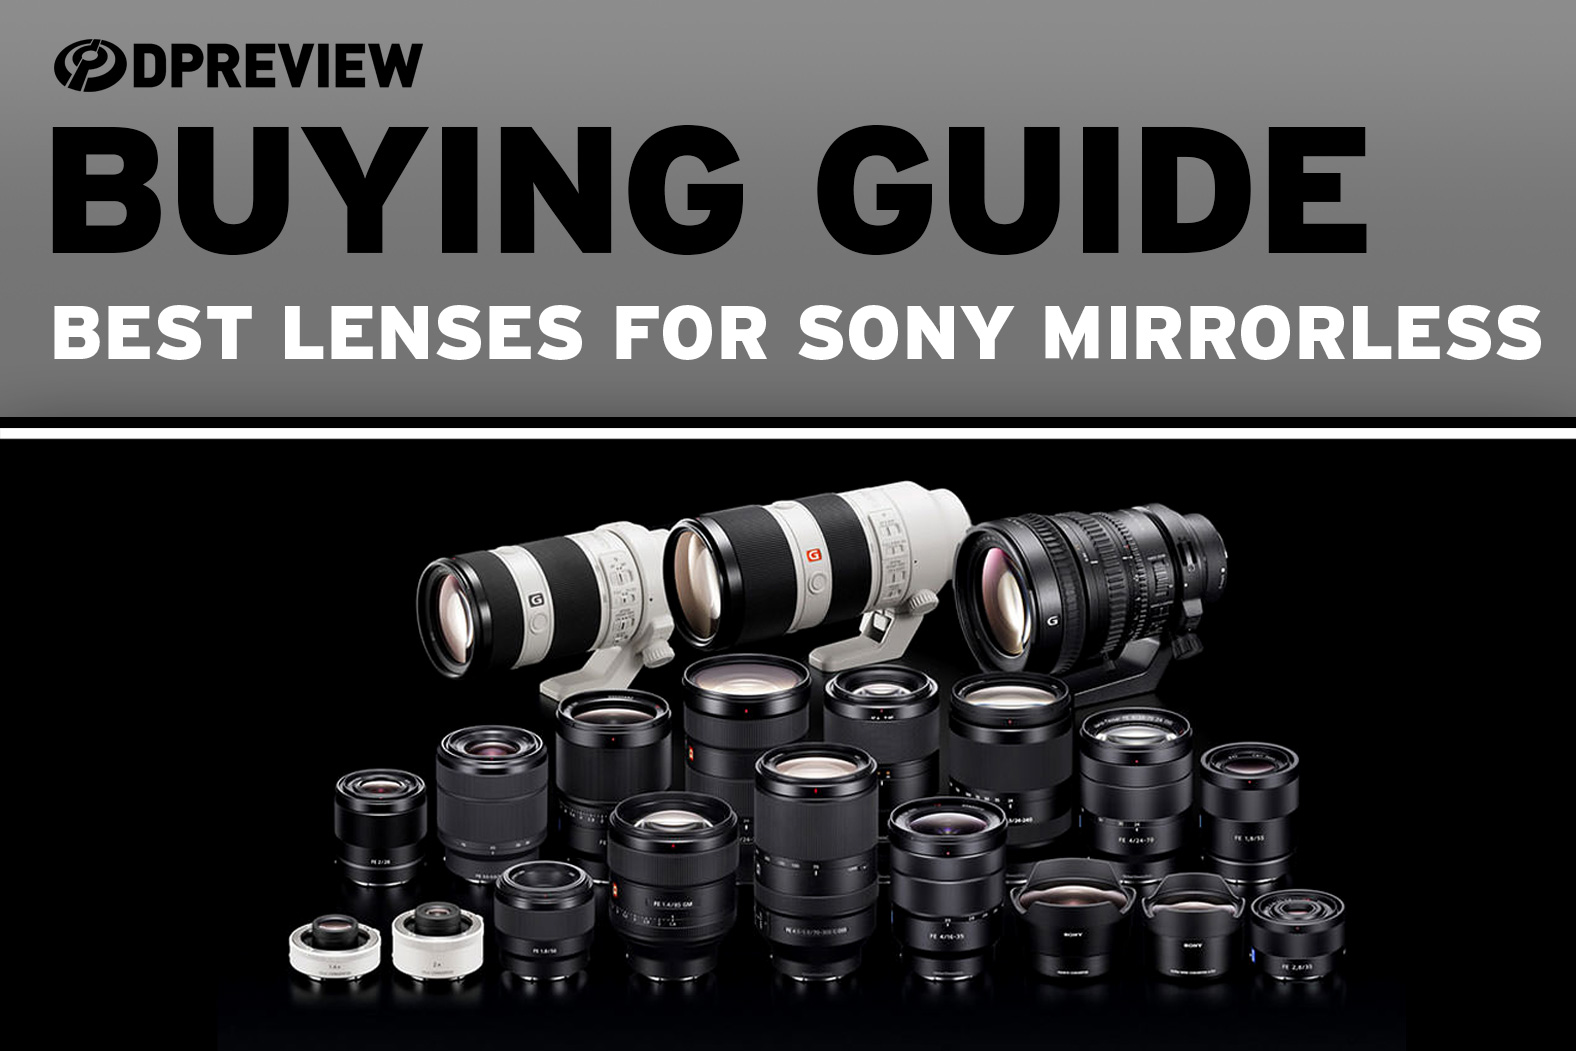 60f58f3f37b9 Buying Guide: The best lenses for Sony mirrorless cameras: Digital ...